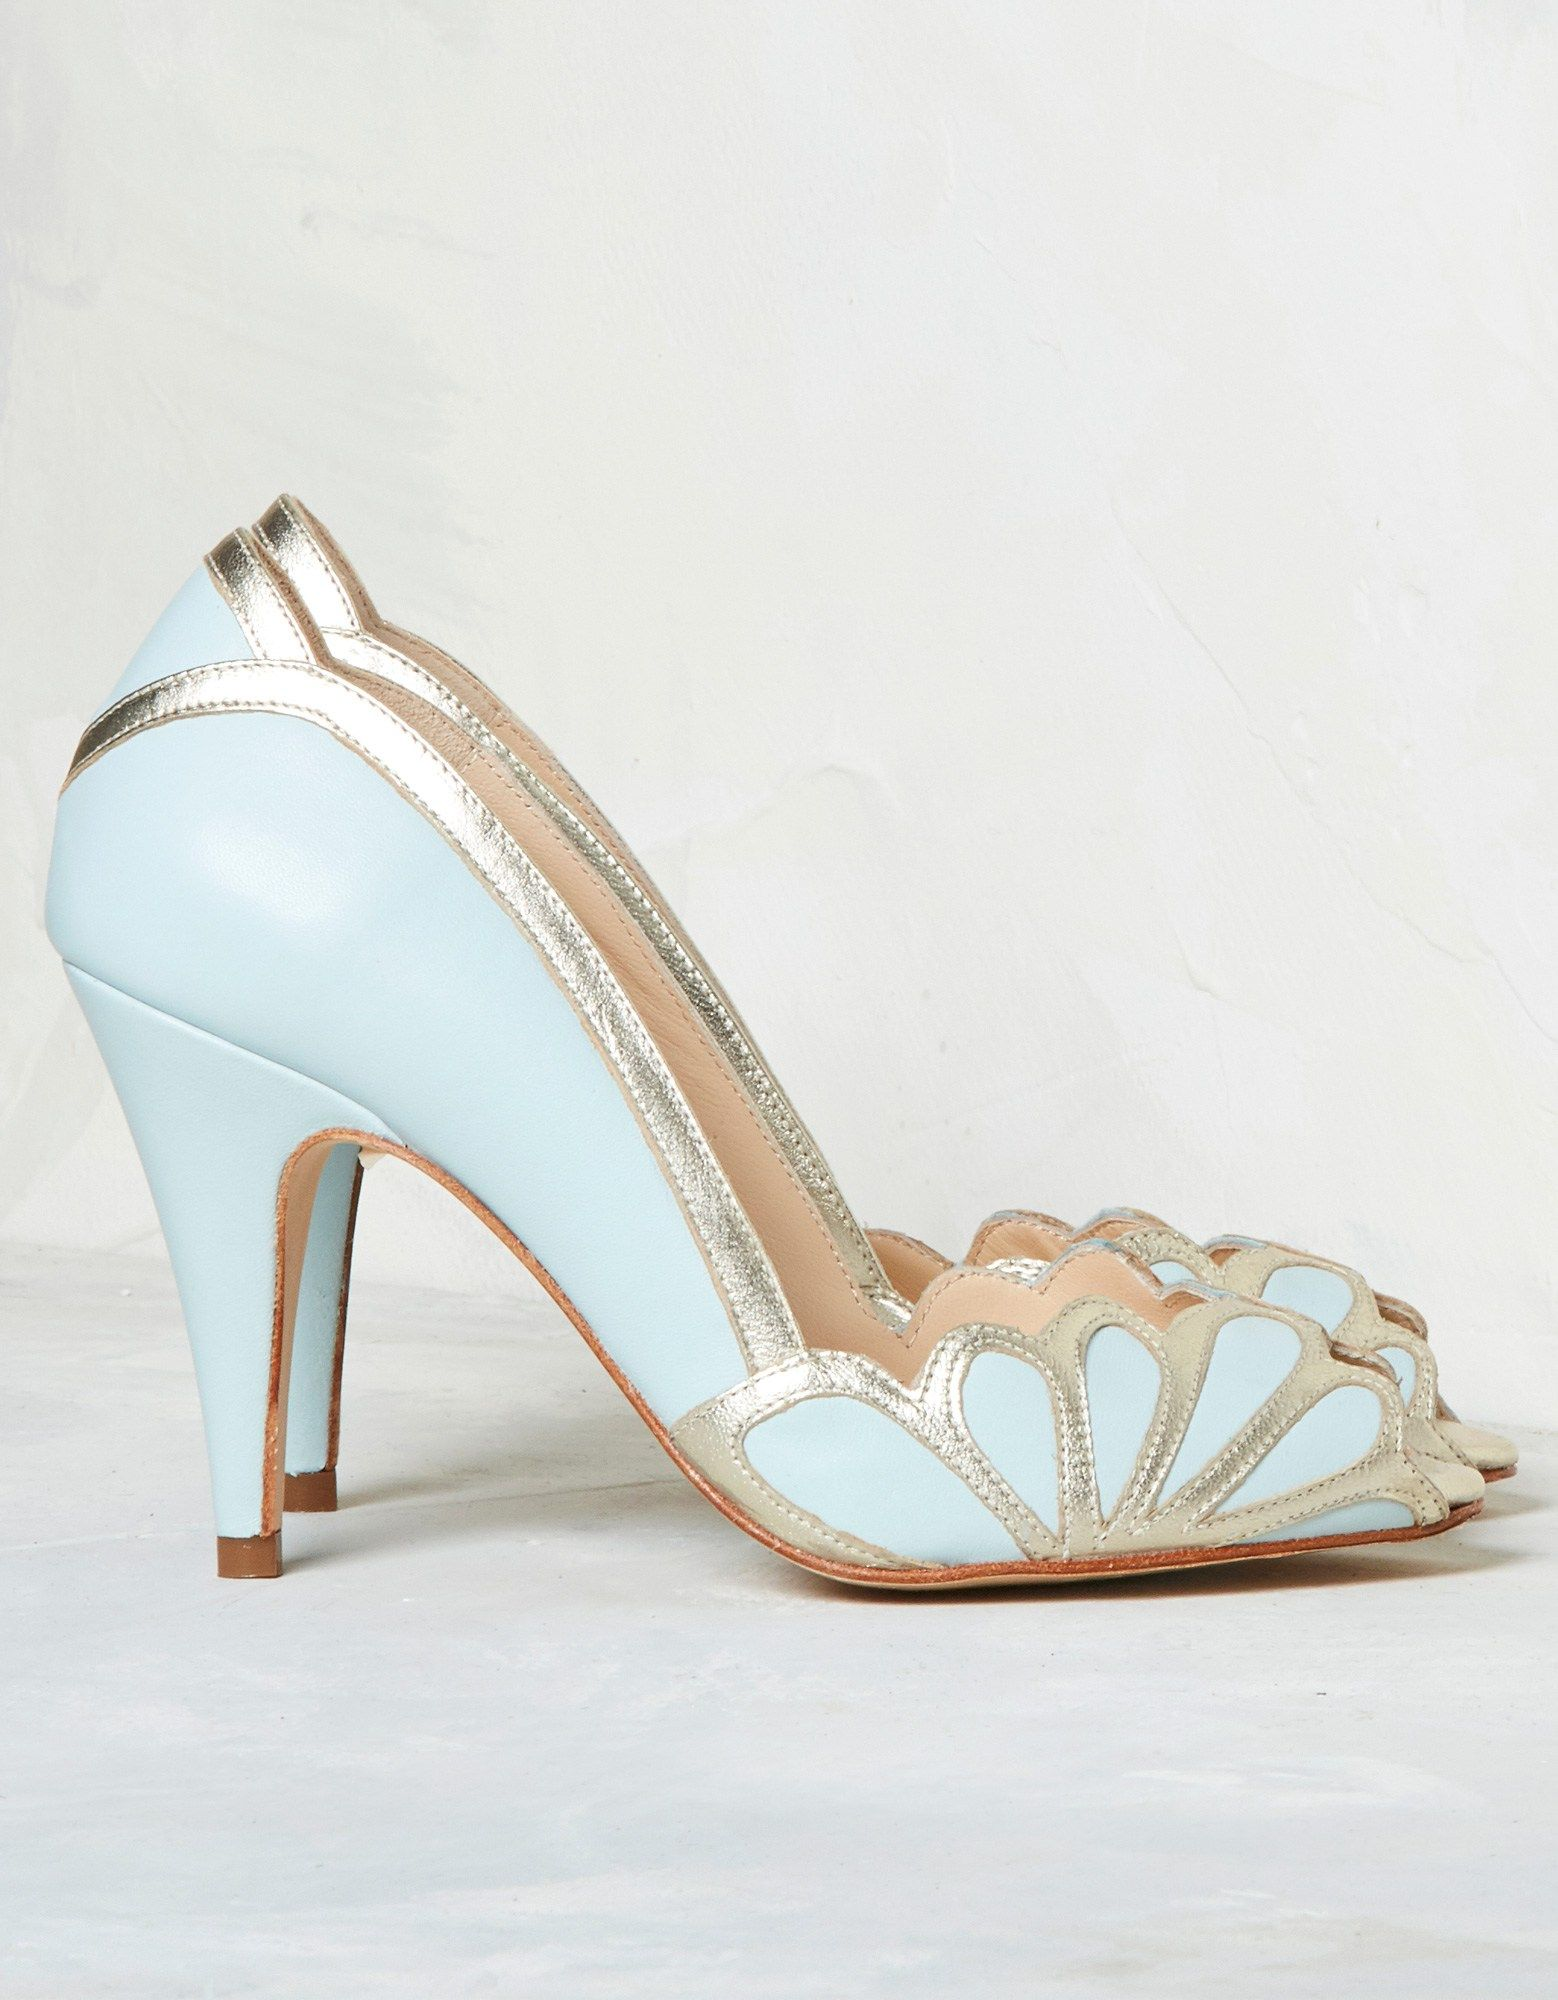 1c05c7a4935 Isabelle Ice Blue   Rachel Simpson Shoes. Available at www ...